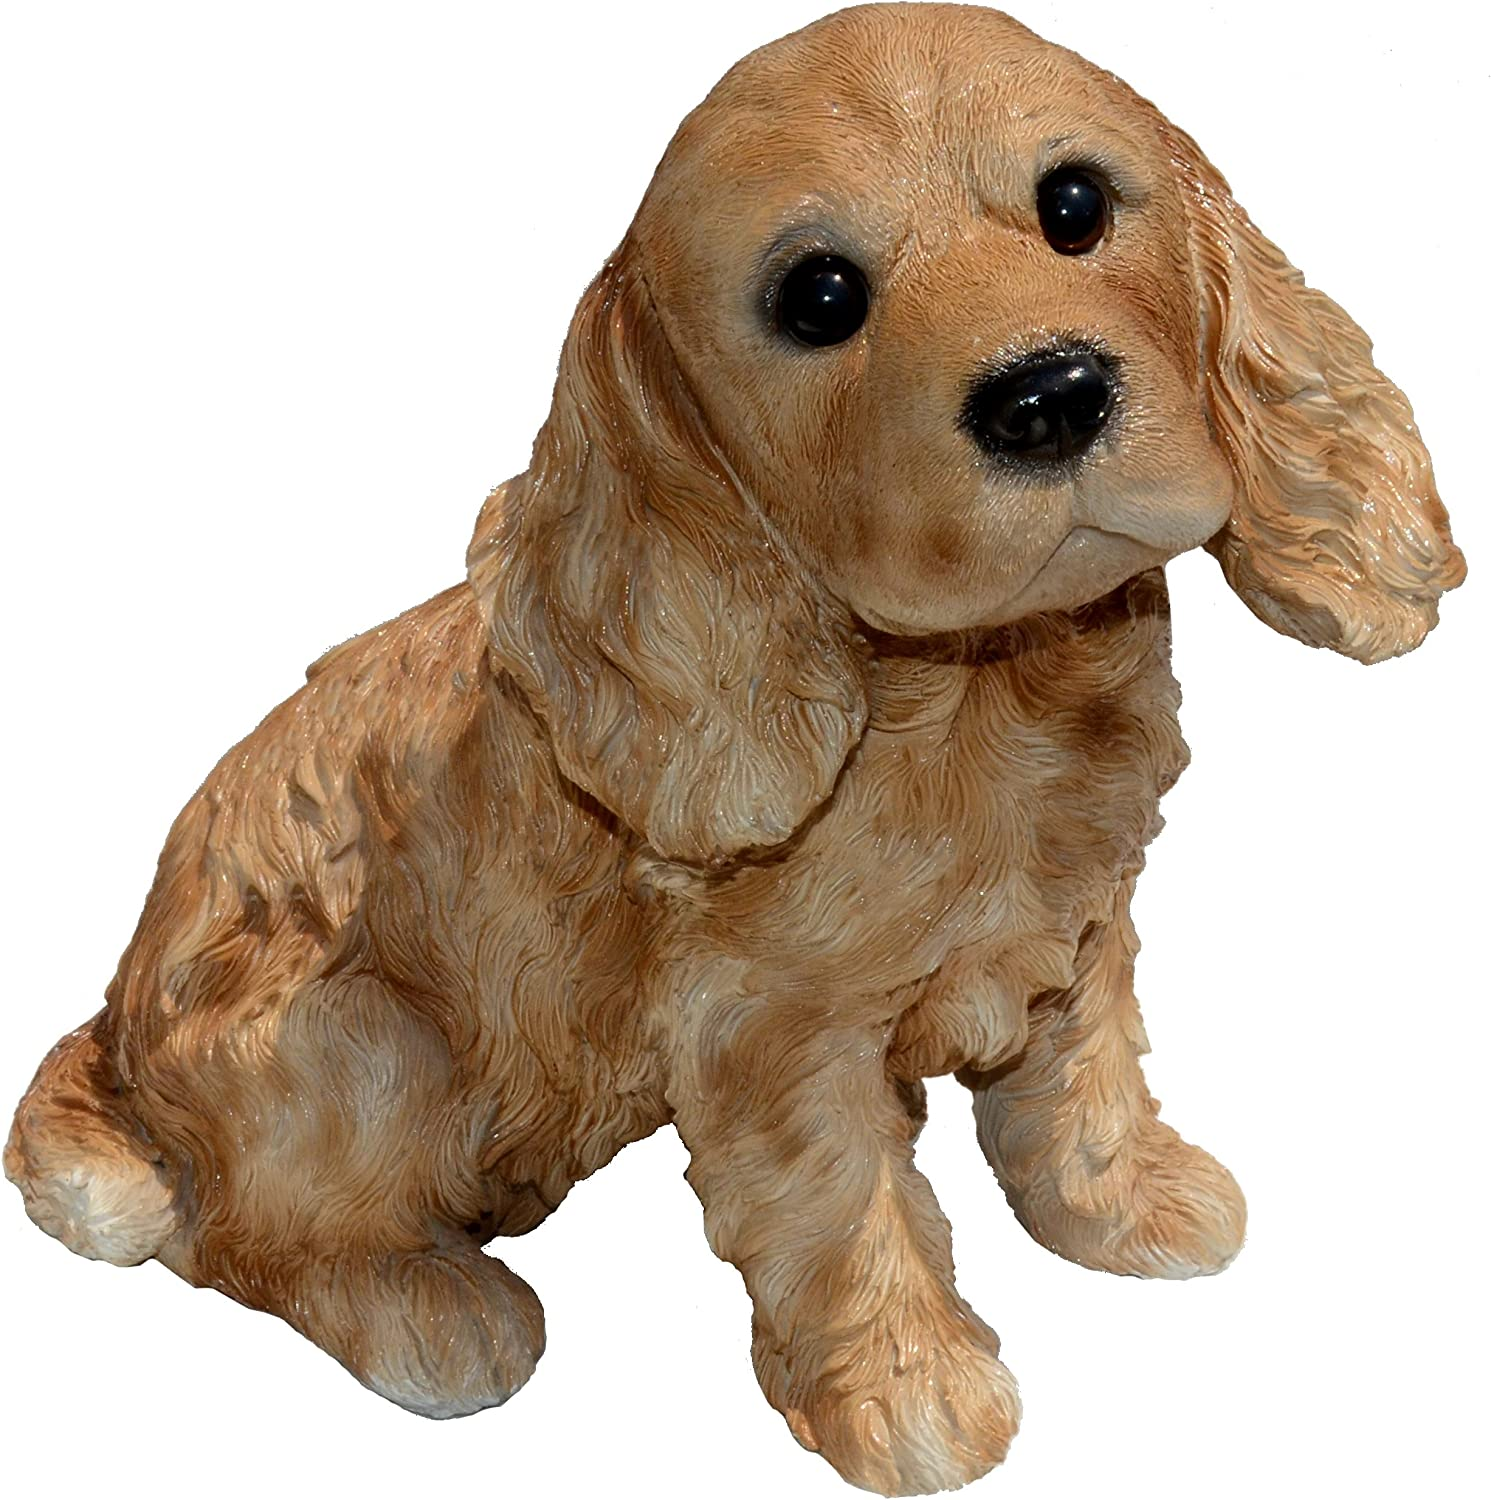 Michael Carr Designs Cocky-Cocker Spaniel Puppy M Brown Outdoor Puppy Dog Figurine for Gardens, patios and lawns (80095)